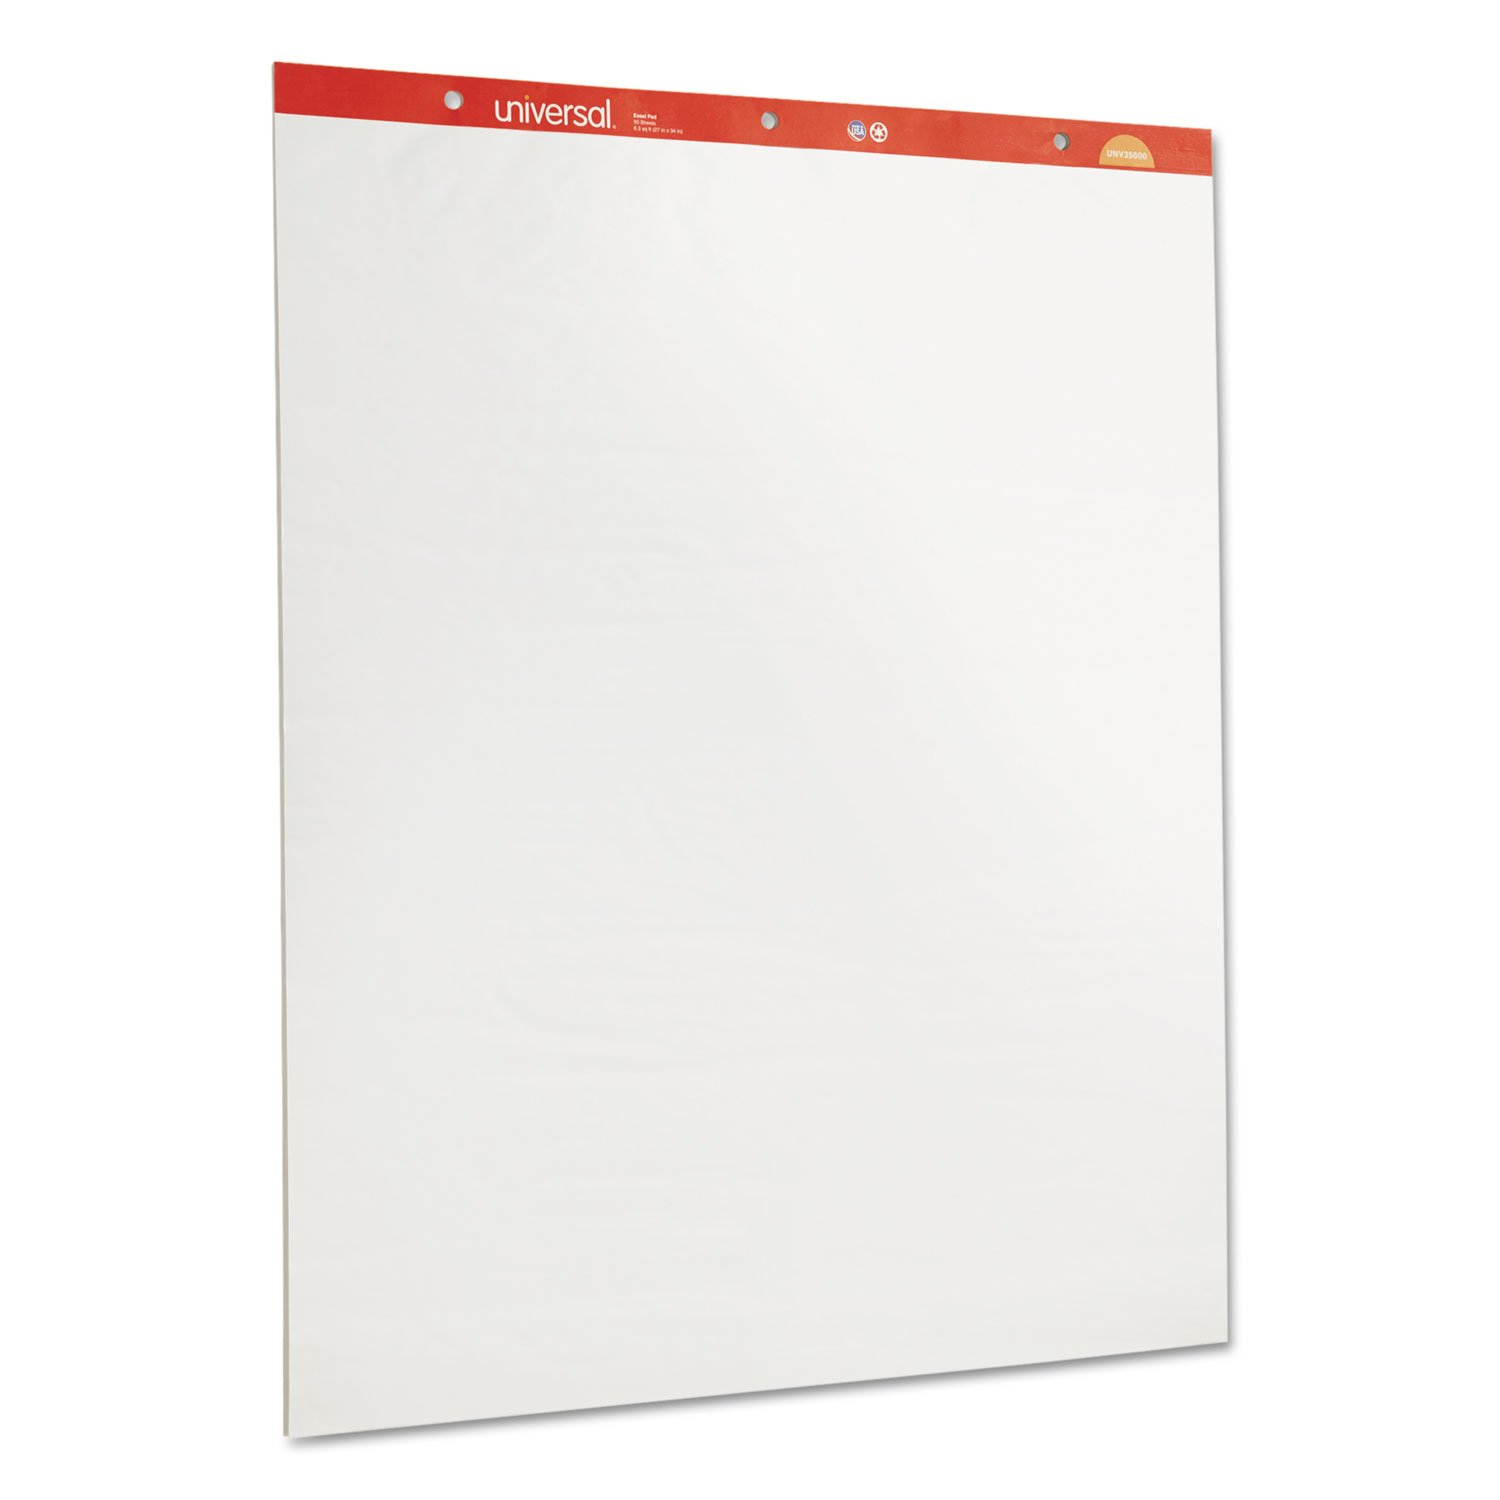 Universal 35600 Recycled Easel Pads, Unruled, 27 x 34, White, 50 Sheet (Case of 2)